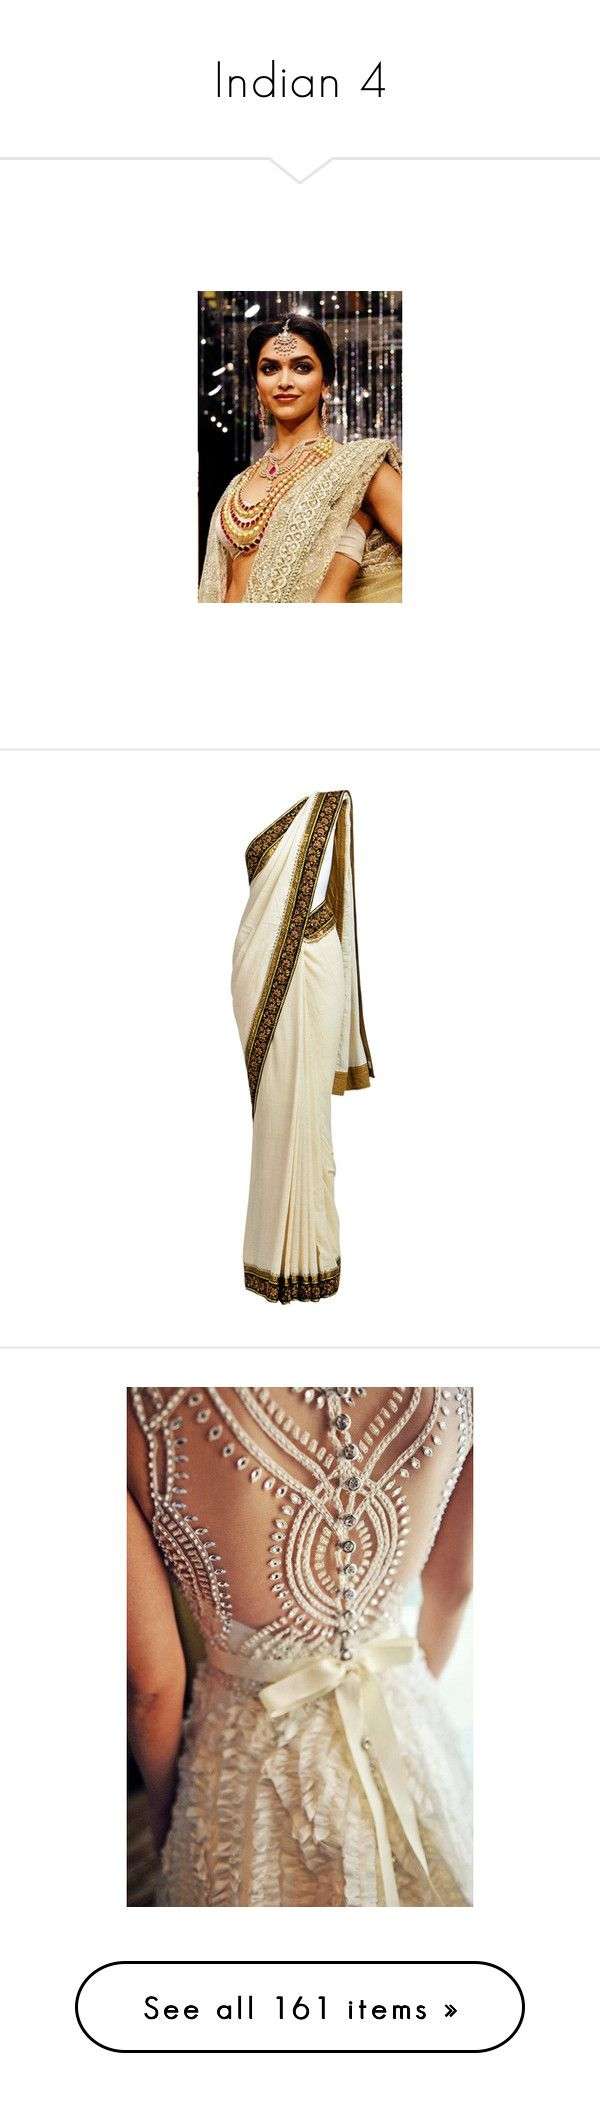 """""""Indian 4"""" by o-hugsandkisses-x ❤ liked on Polyvore featuring dresses, gowns, long dresses, sari, wedding dresses, backgrounds, wedding, pants, embroidered pants and cream pants"""